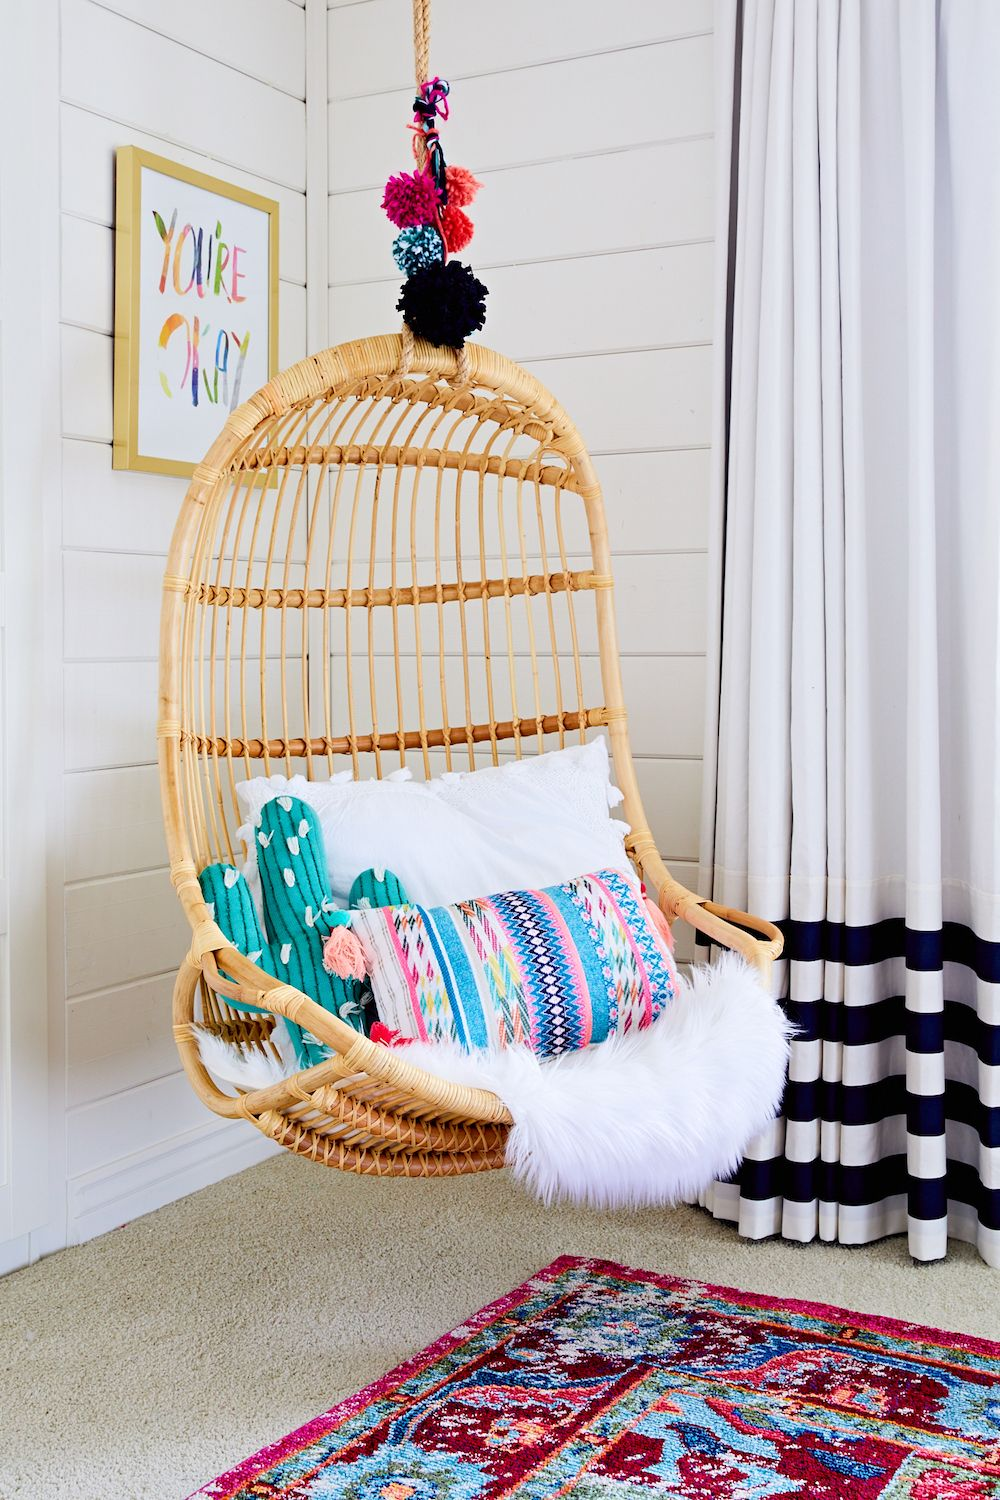 Trendspotting hanging chairs are swinging into kids design for my